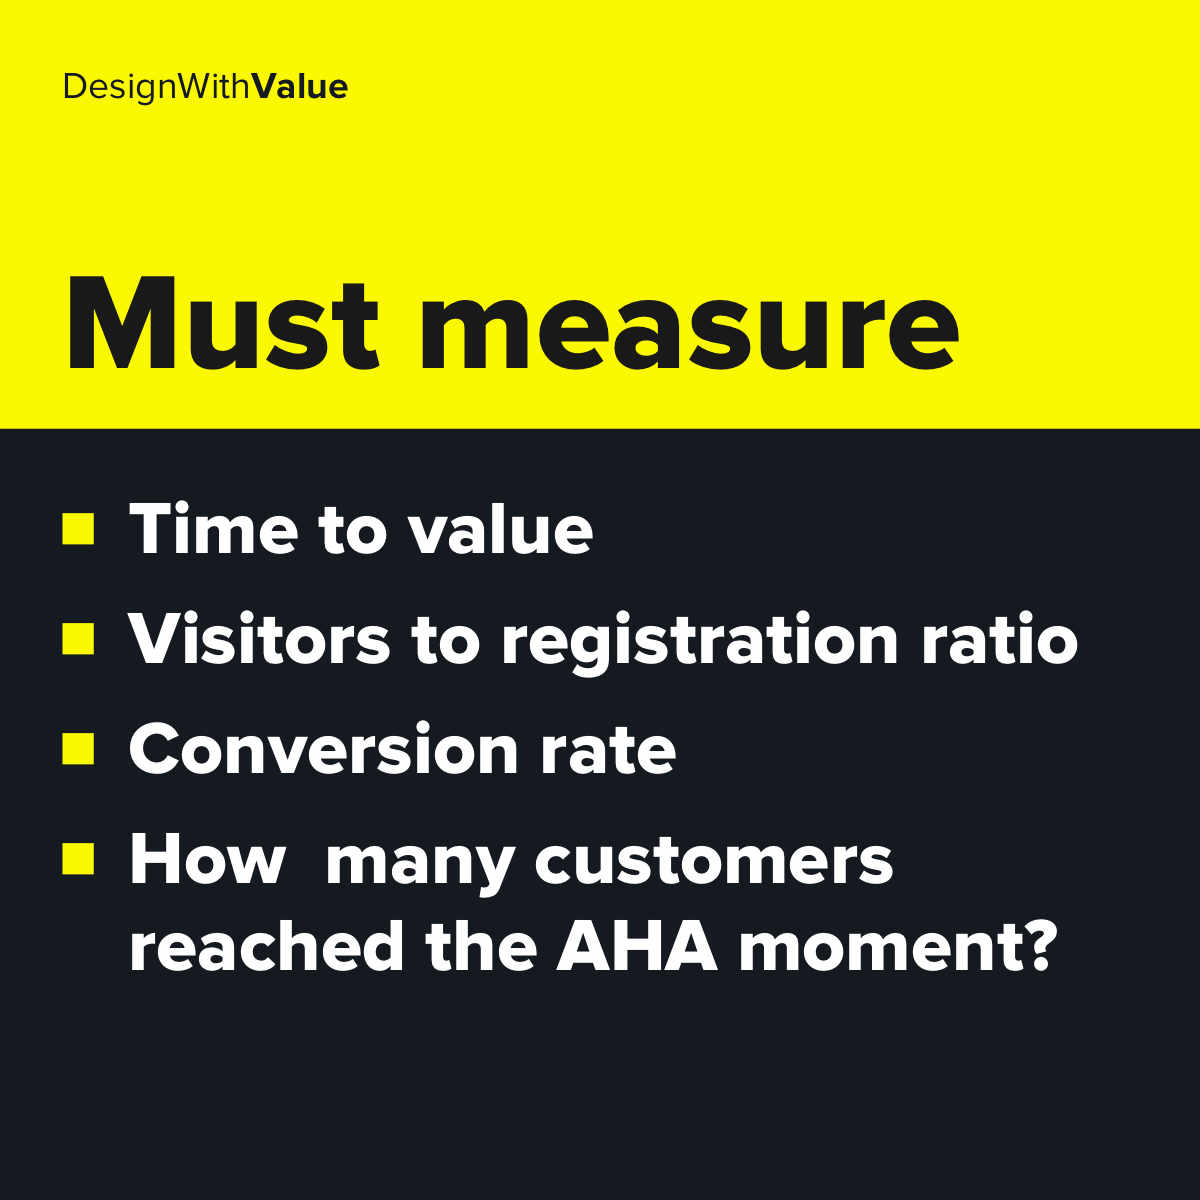 List of metrics: Time to value, visitors to registration ratio, conversion rate, how many customers reached the AHA moment